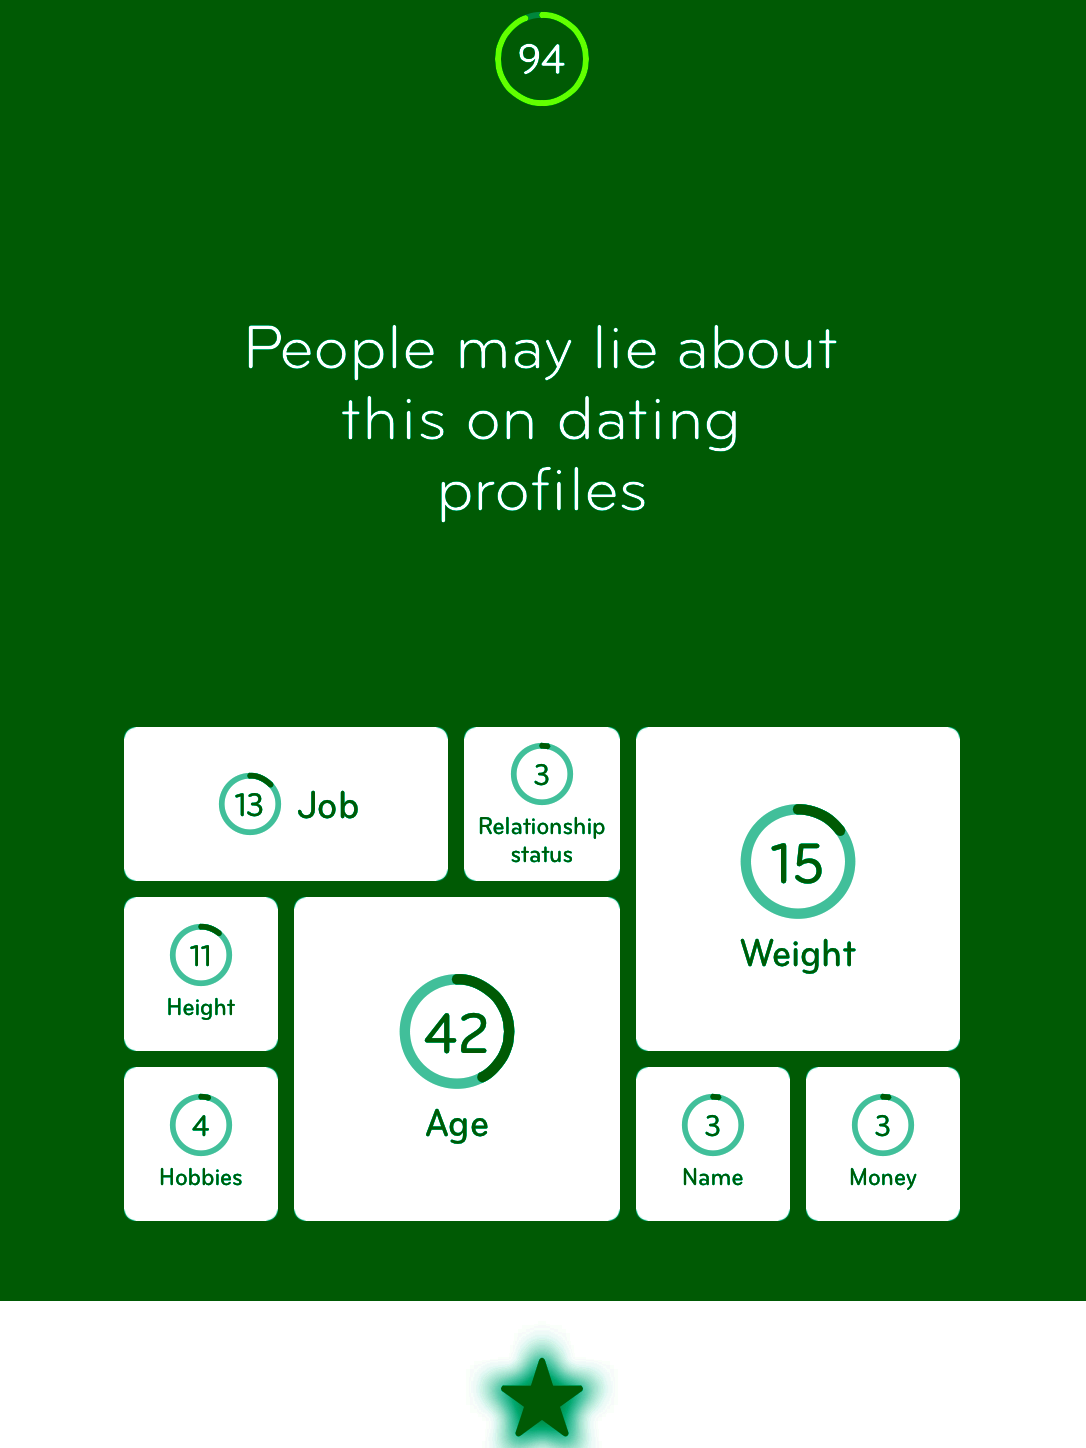 94 people may lie about this on dating profiles